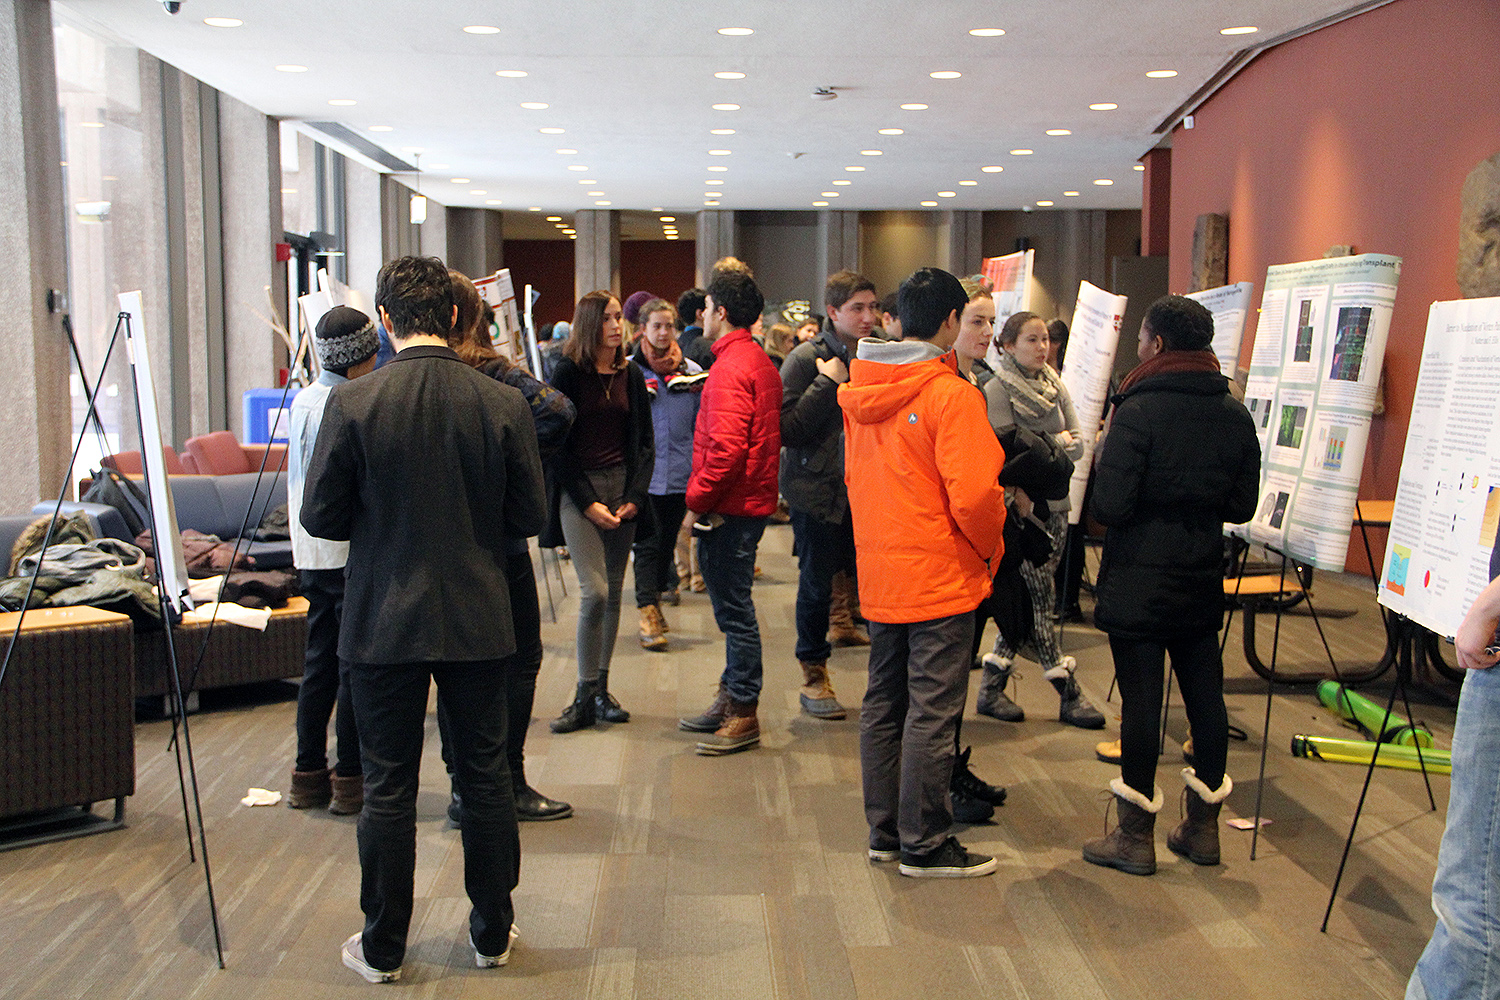 During an undergraduate poster session on Jan. 23, Wesleyan students shared their research with aspiring students interested in finding a research group.